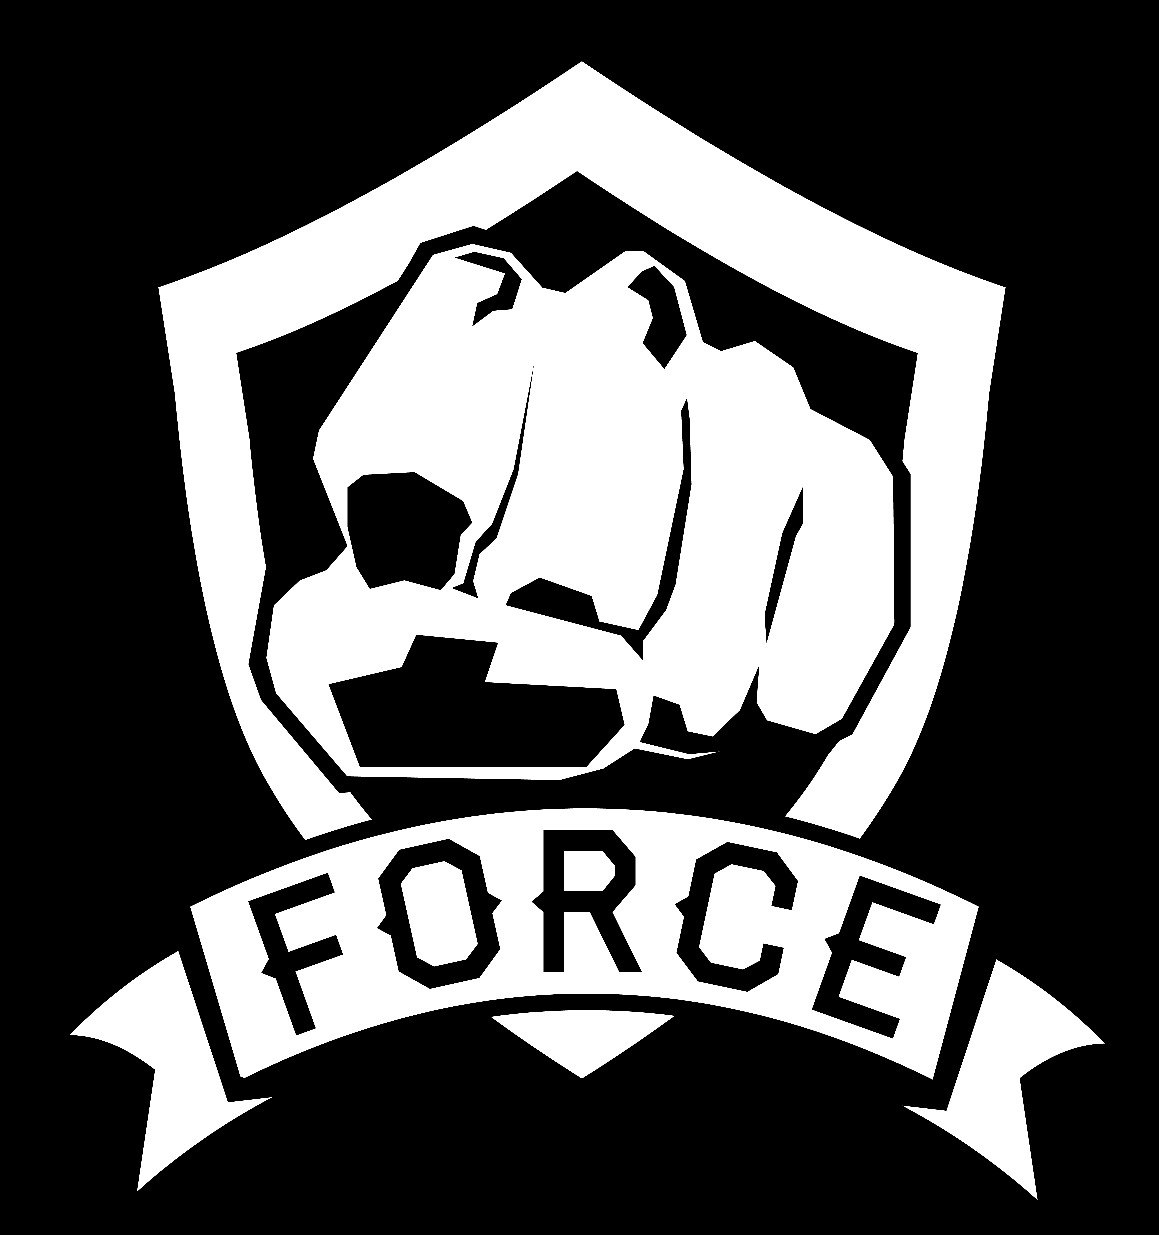 Club information FORCE